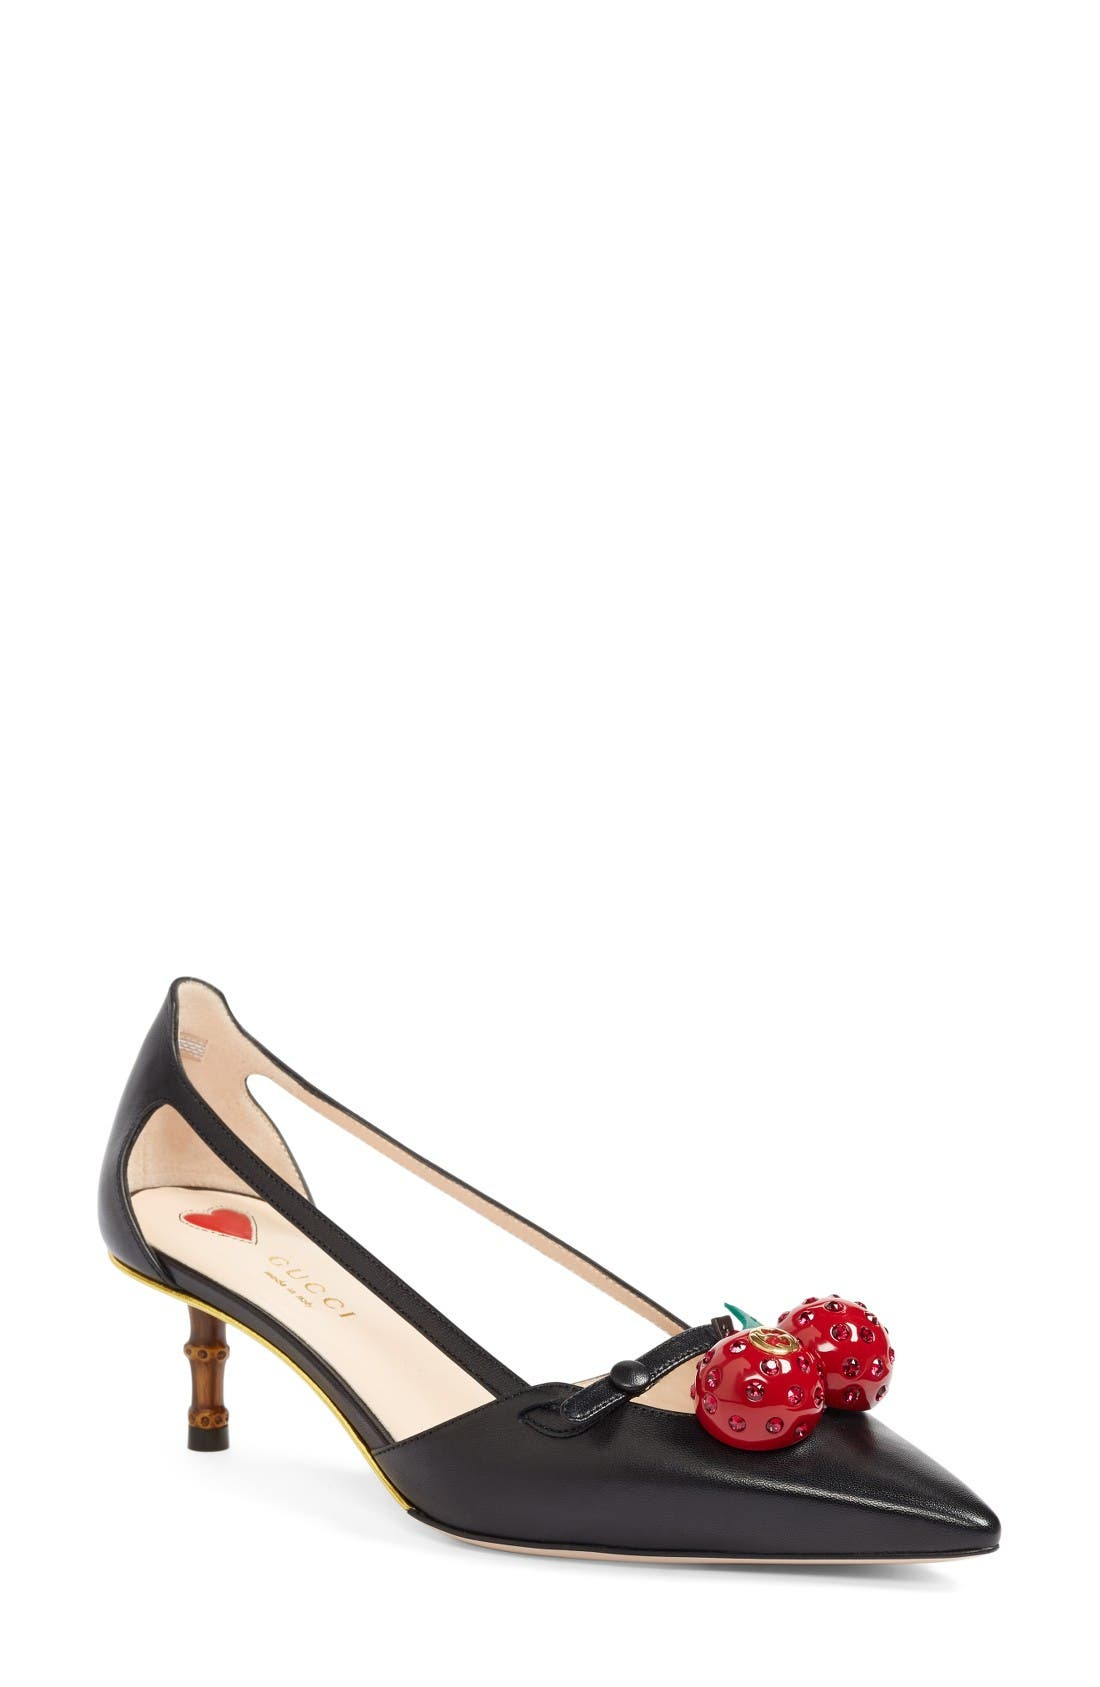 GUCCI Unia Cherry Pump